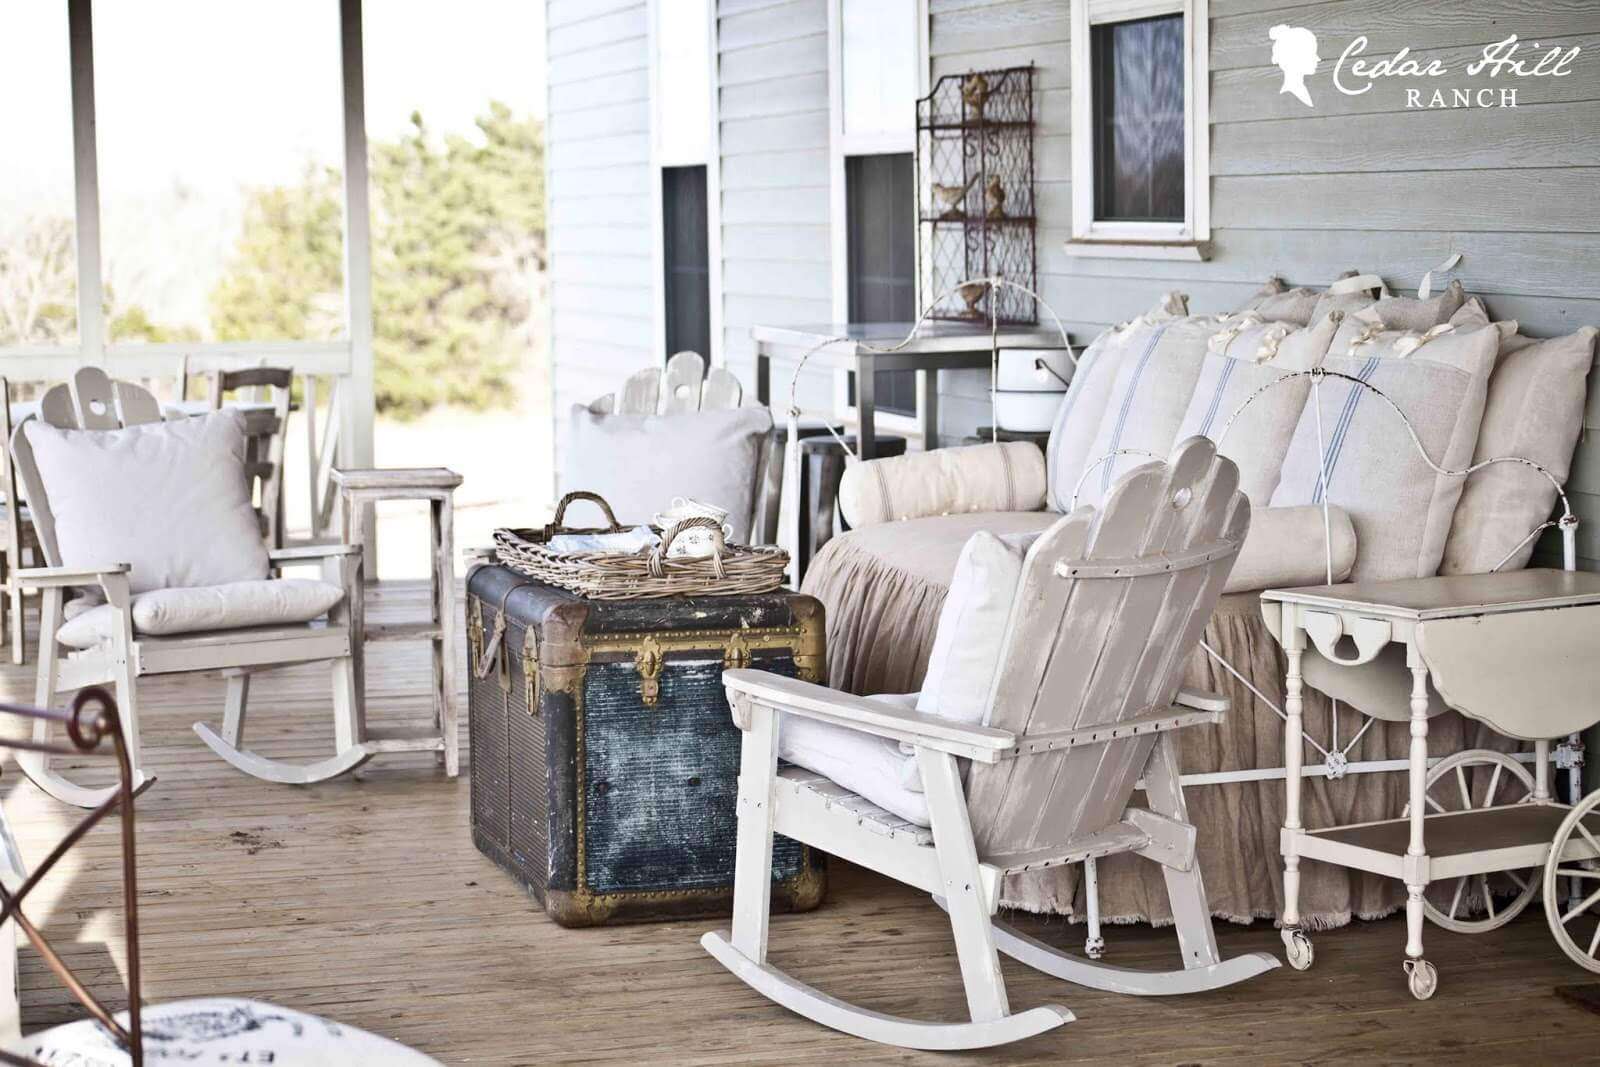 Lived In and Lived On Outdoor Furniture   Vintage Porch Decor Ideas